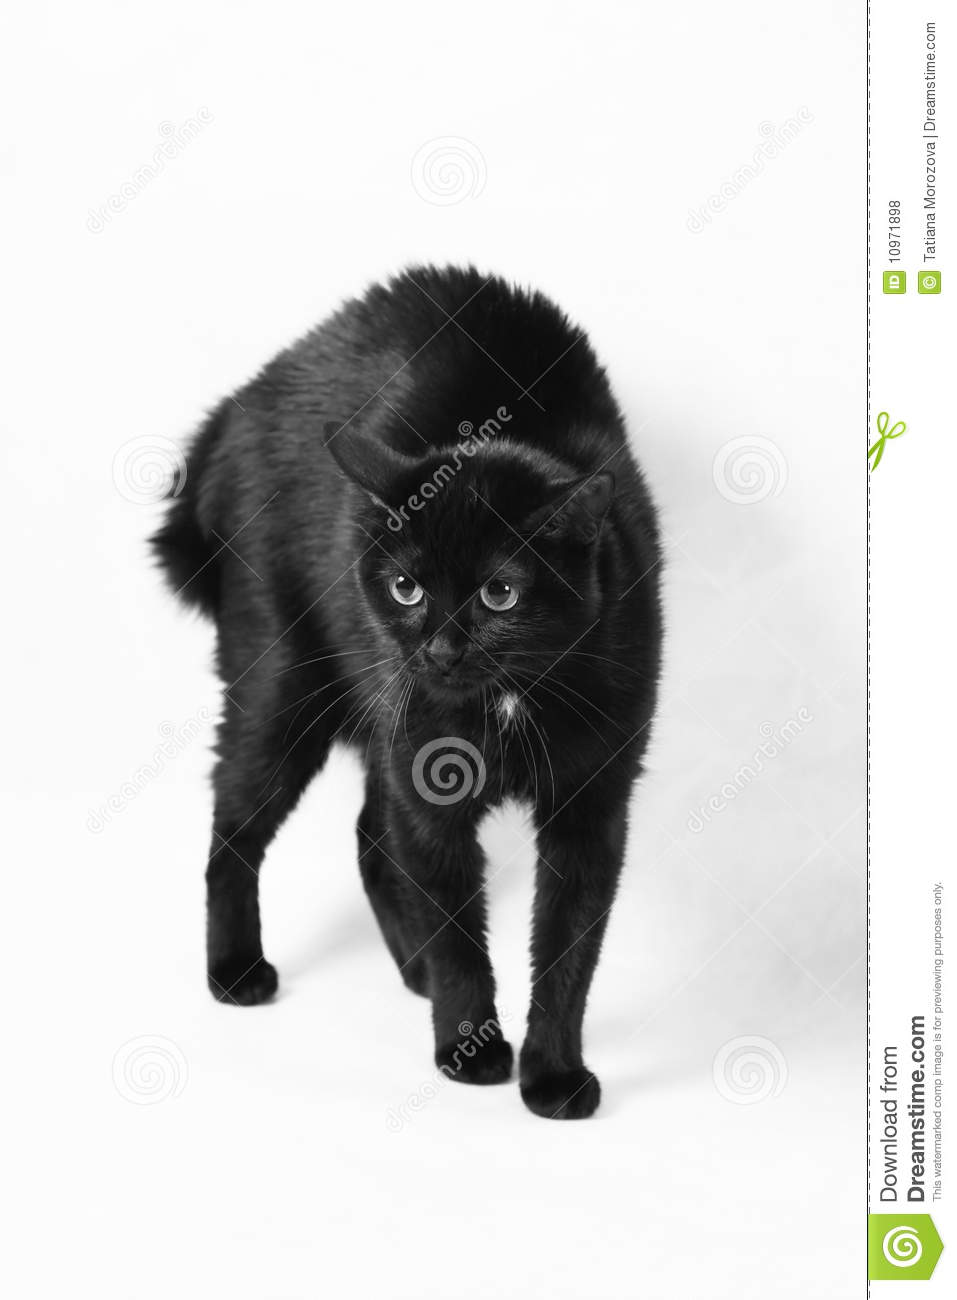 Scared Black Cat Royalty Free Stock Photos - Image: 10971898